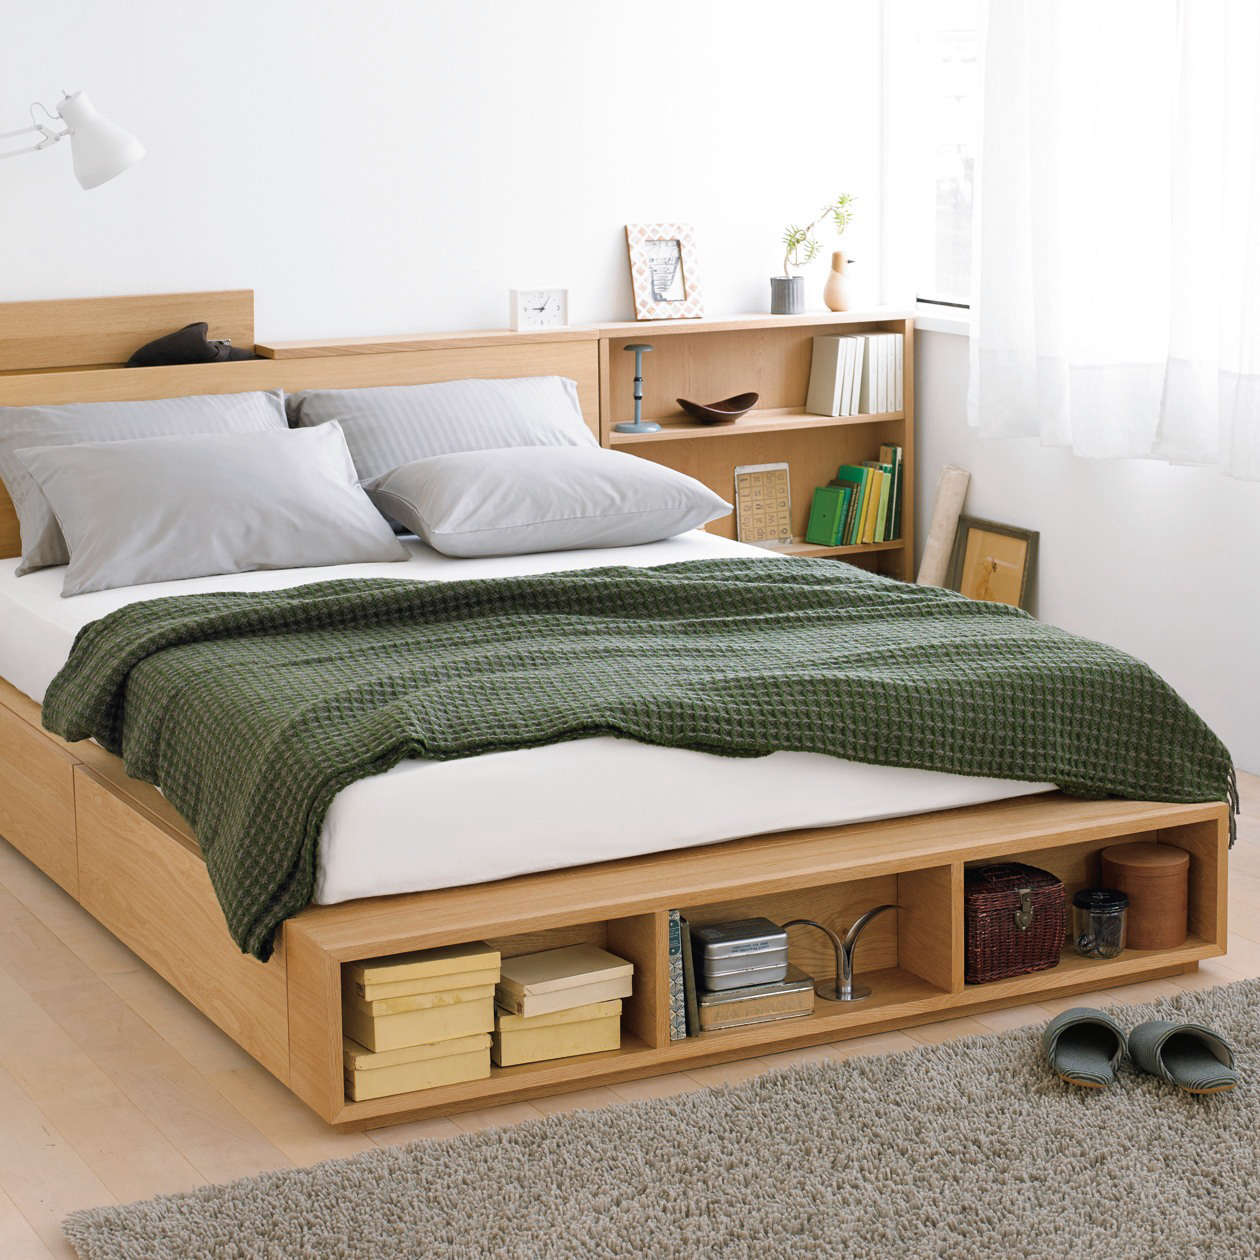 Popular Storage Bed Frame Decor